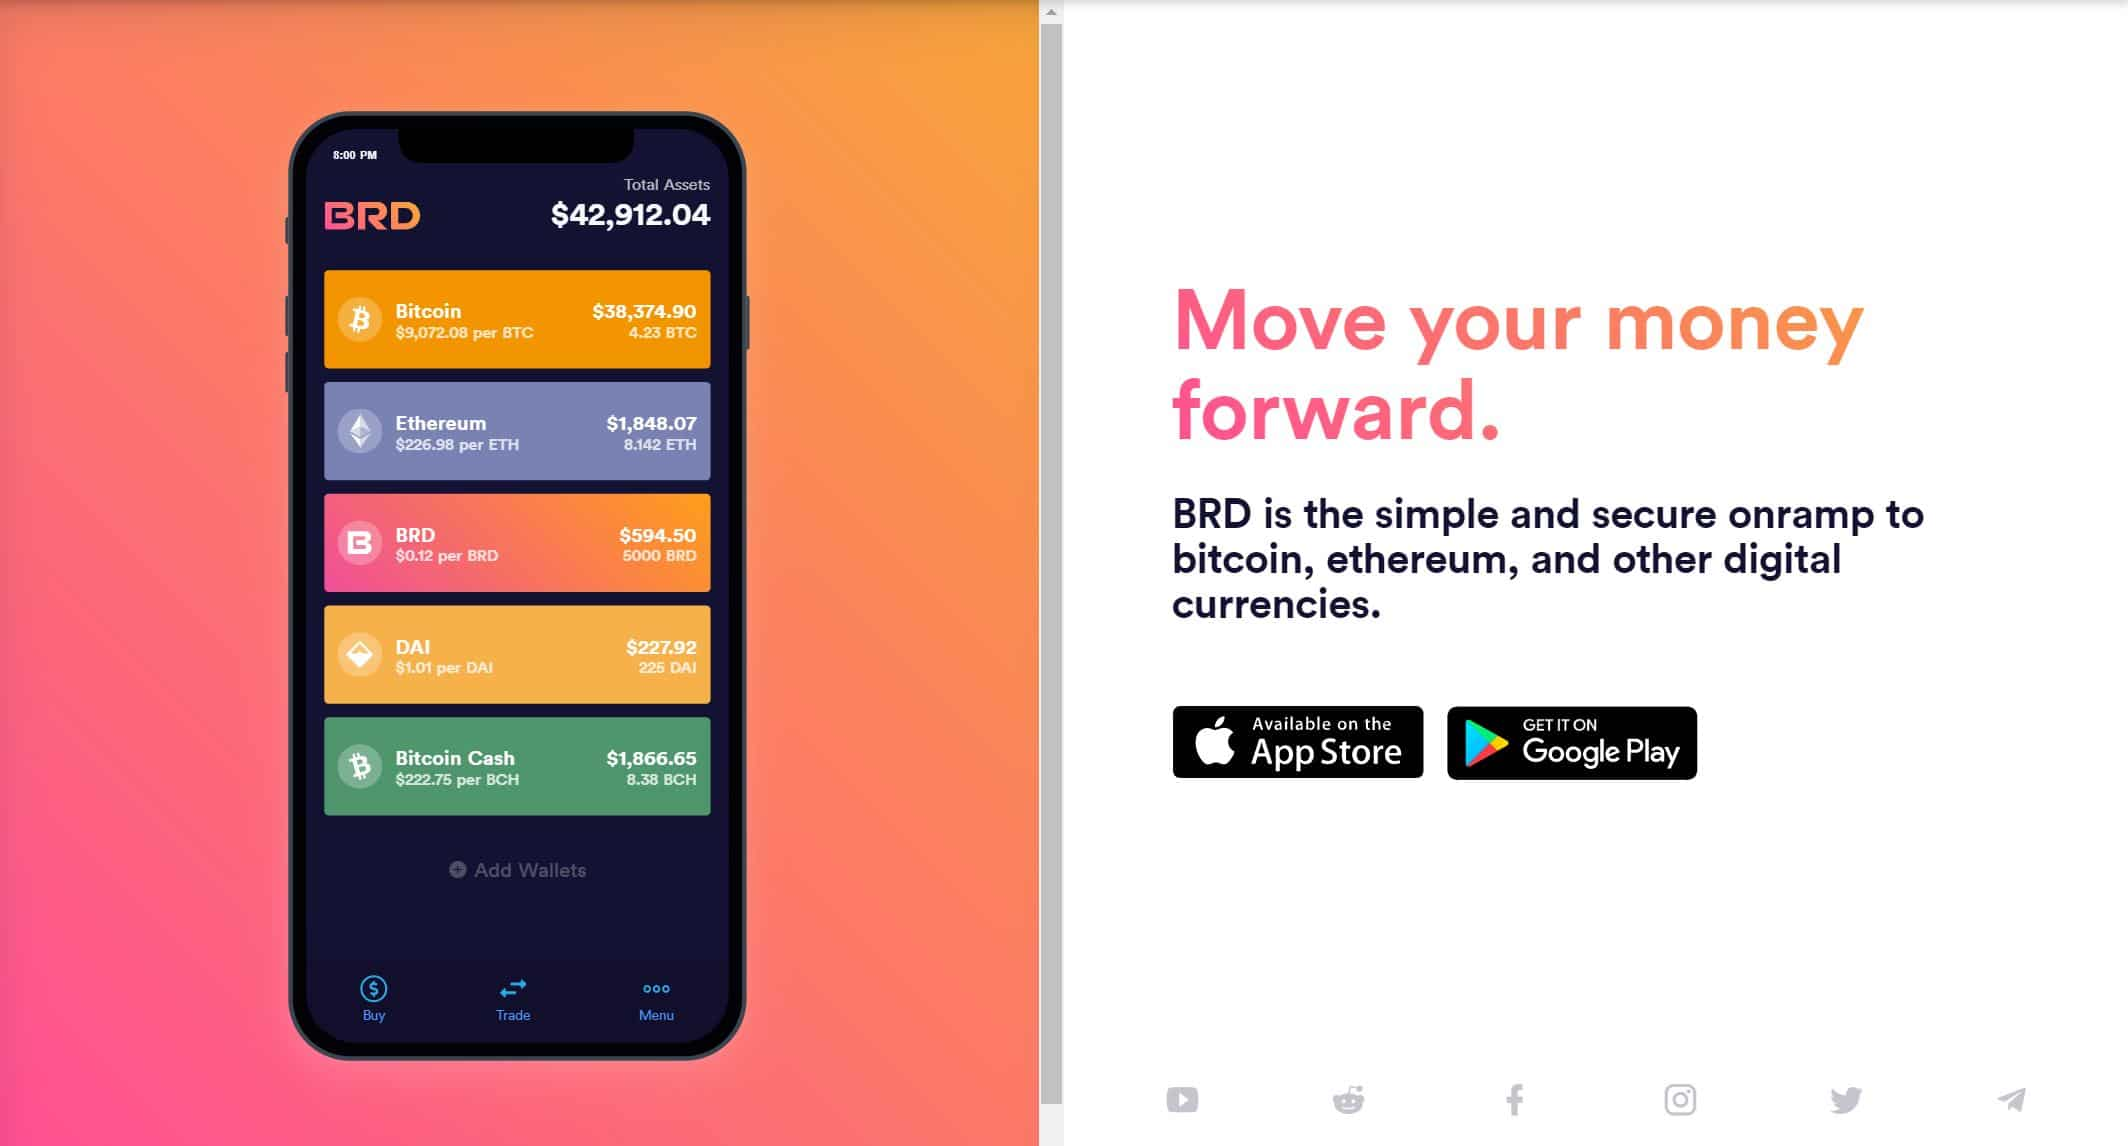 bread wallet is one of the most popular bitcoin mobile wallet